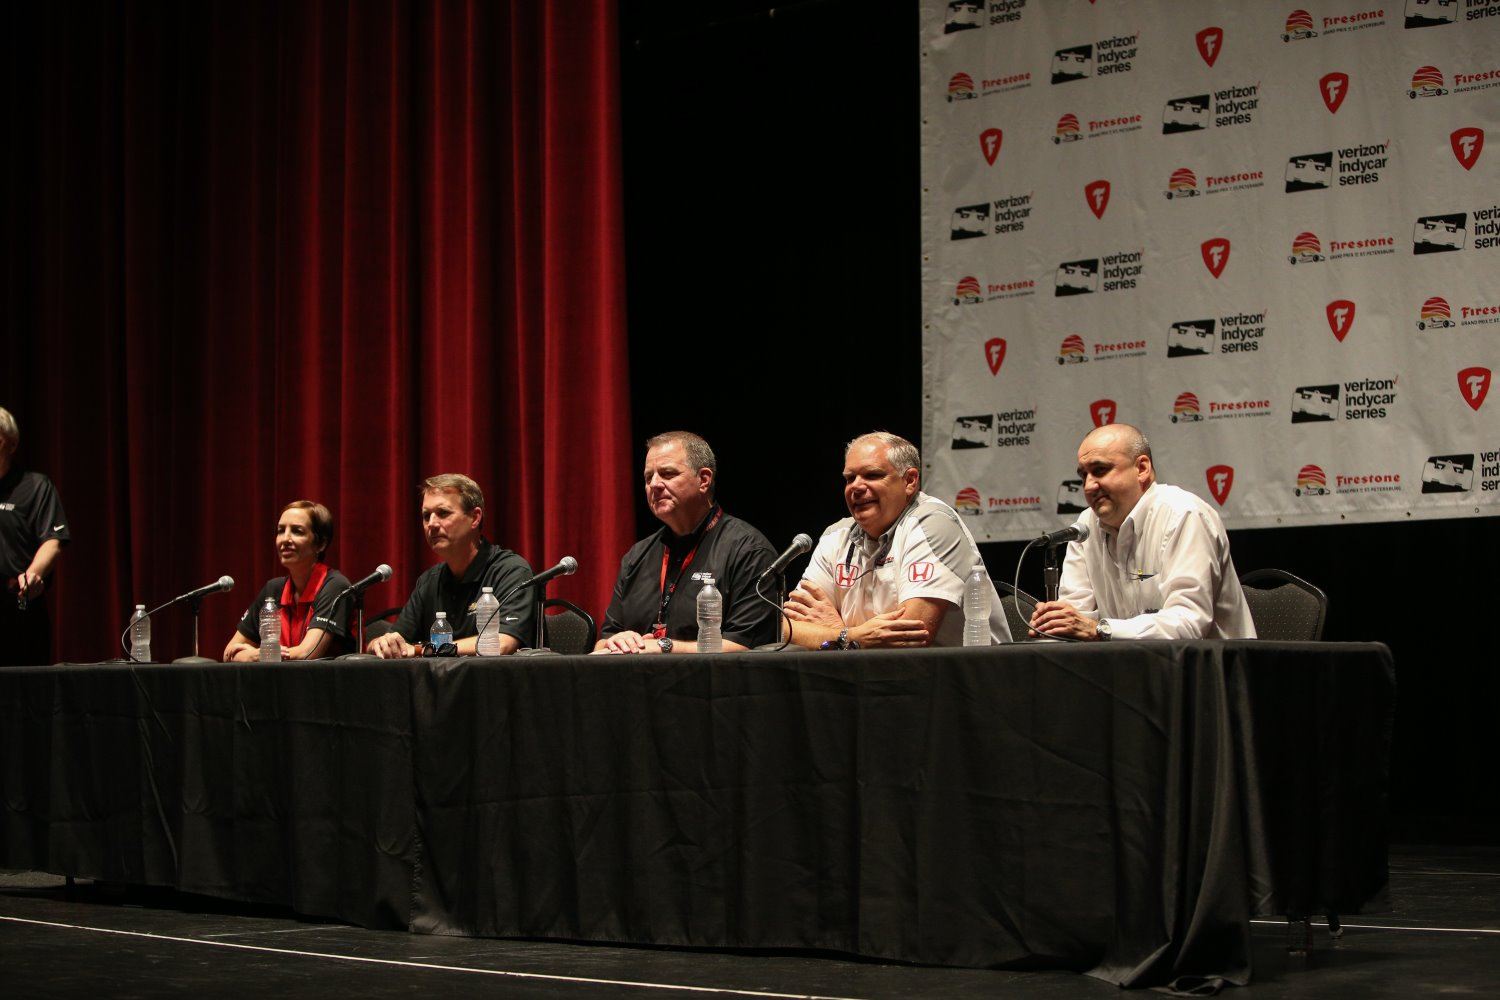 From left, Lisa Boggs, Mark Kent, Jay Frye, Art St. Cyr, Stefano De Ponti